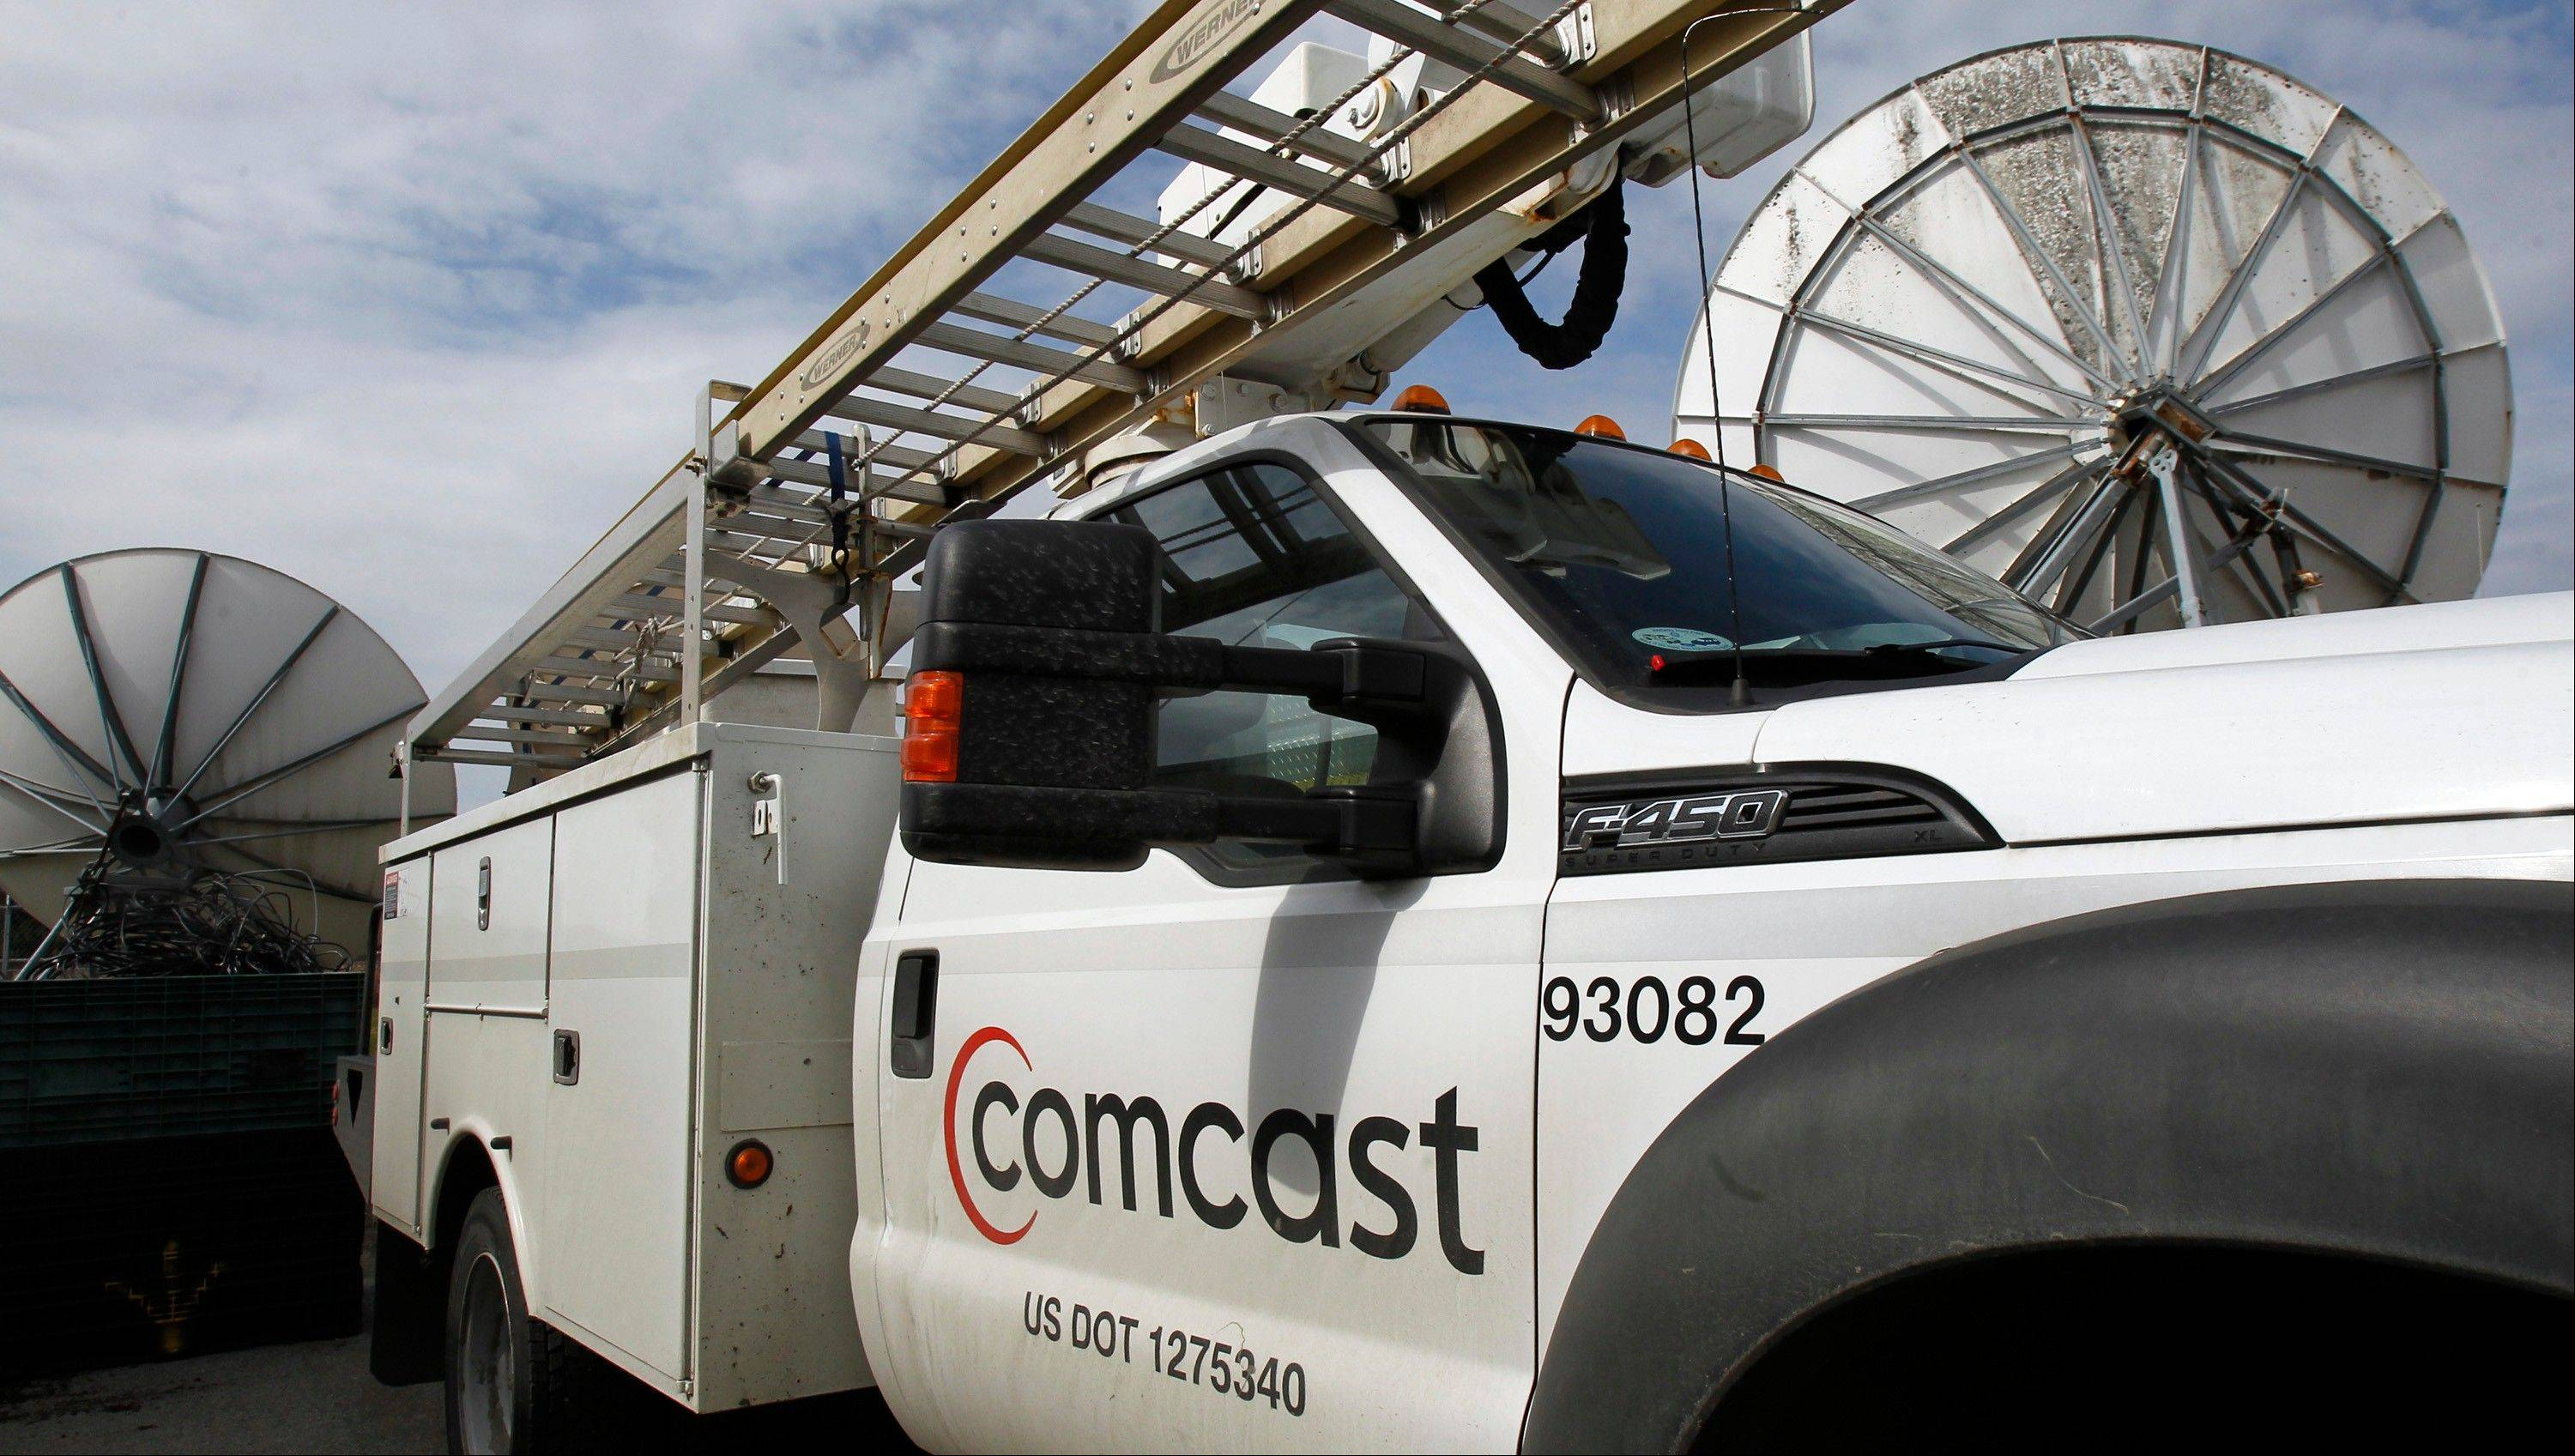 Comcast Corp., the nation�s largest cable company and owner of NBCUniversal, on Wednesday said its net income rose 17 percent in the latest quarter, powered by continued strong results from its cable operations.